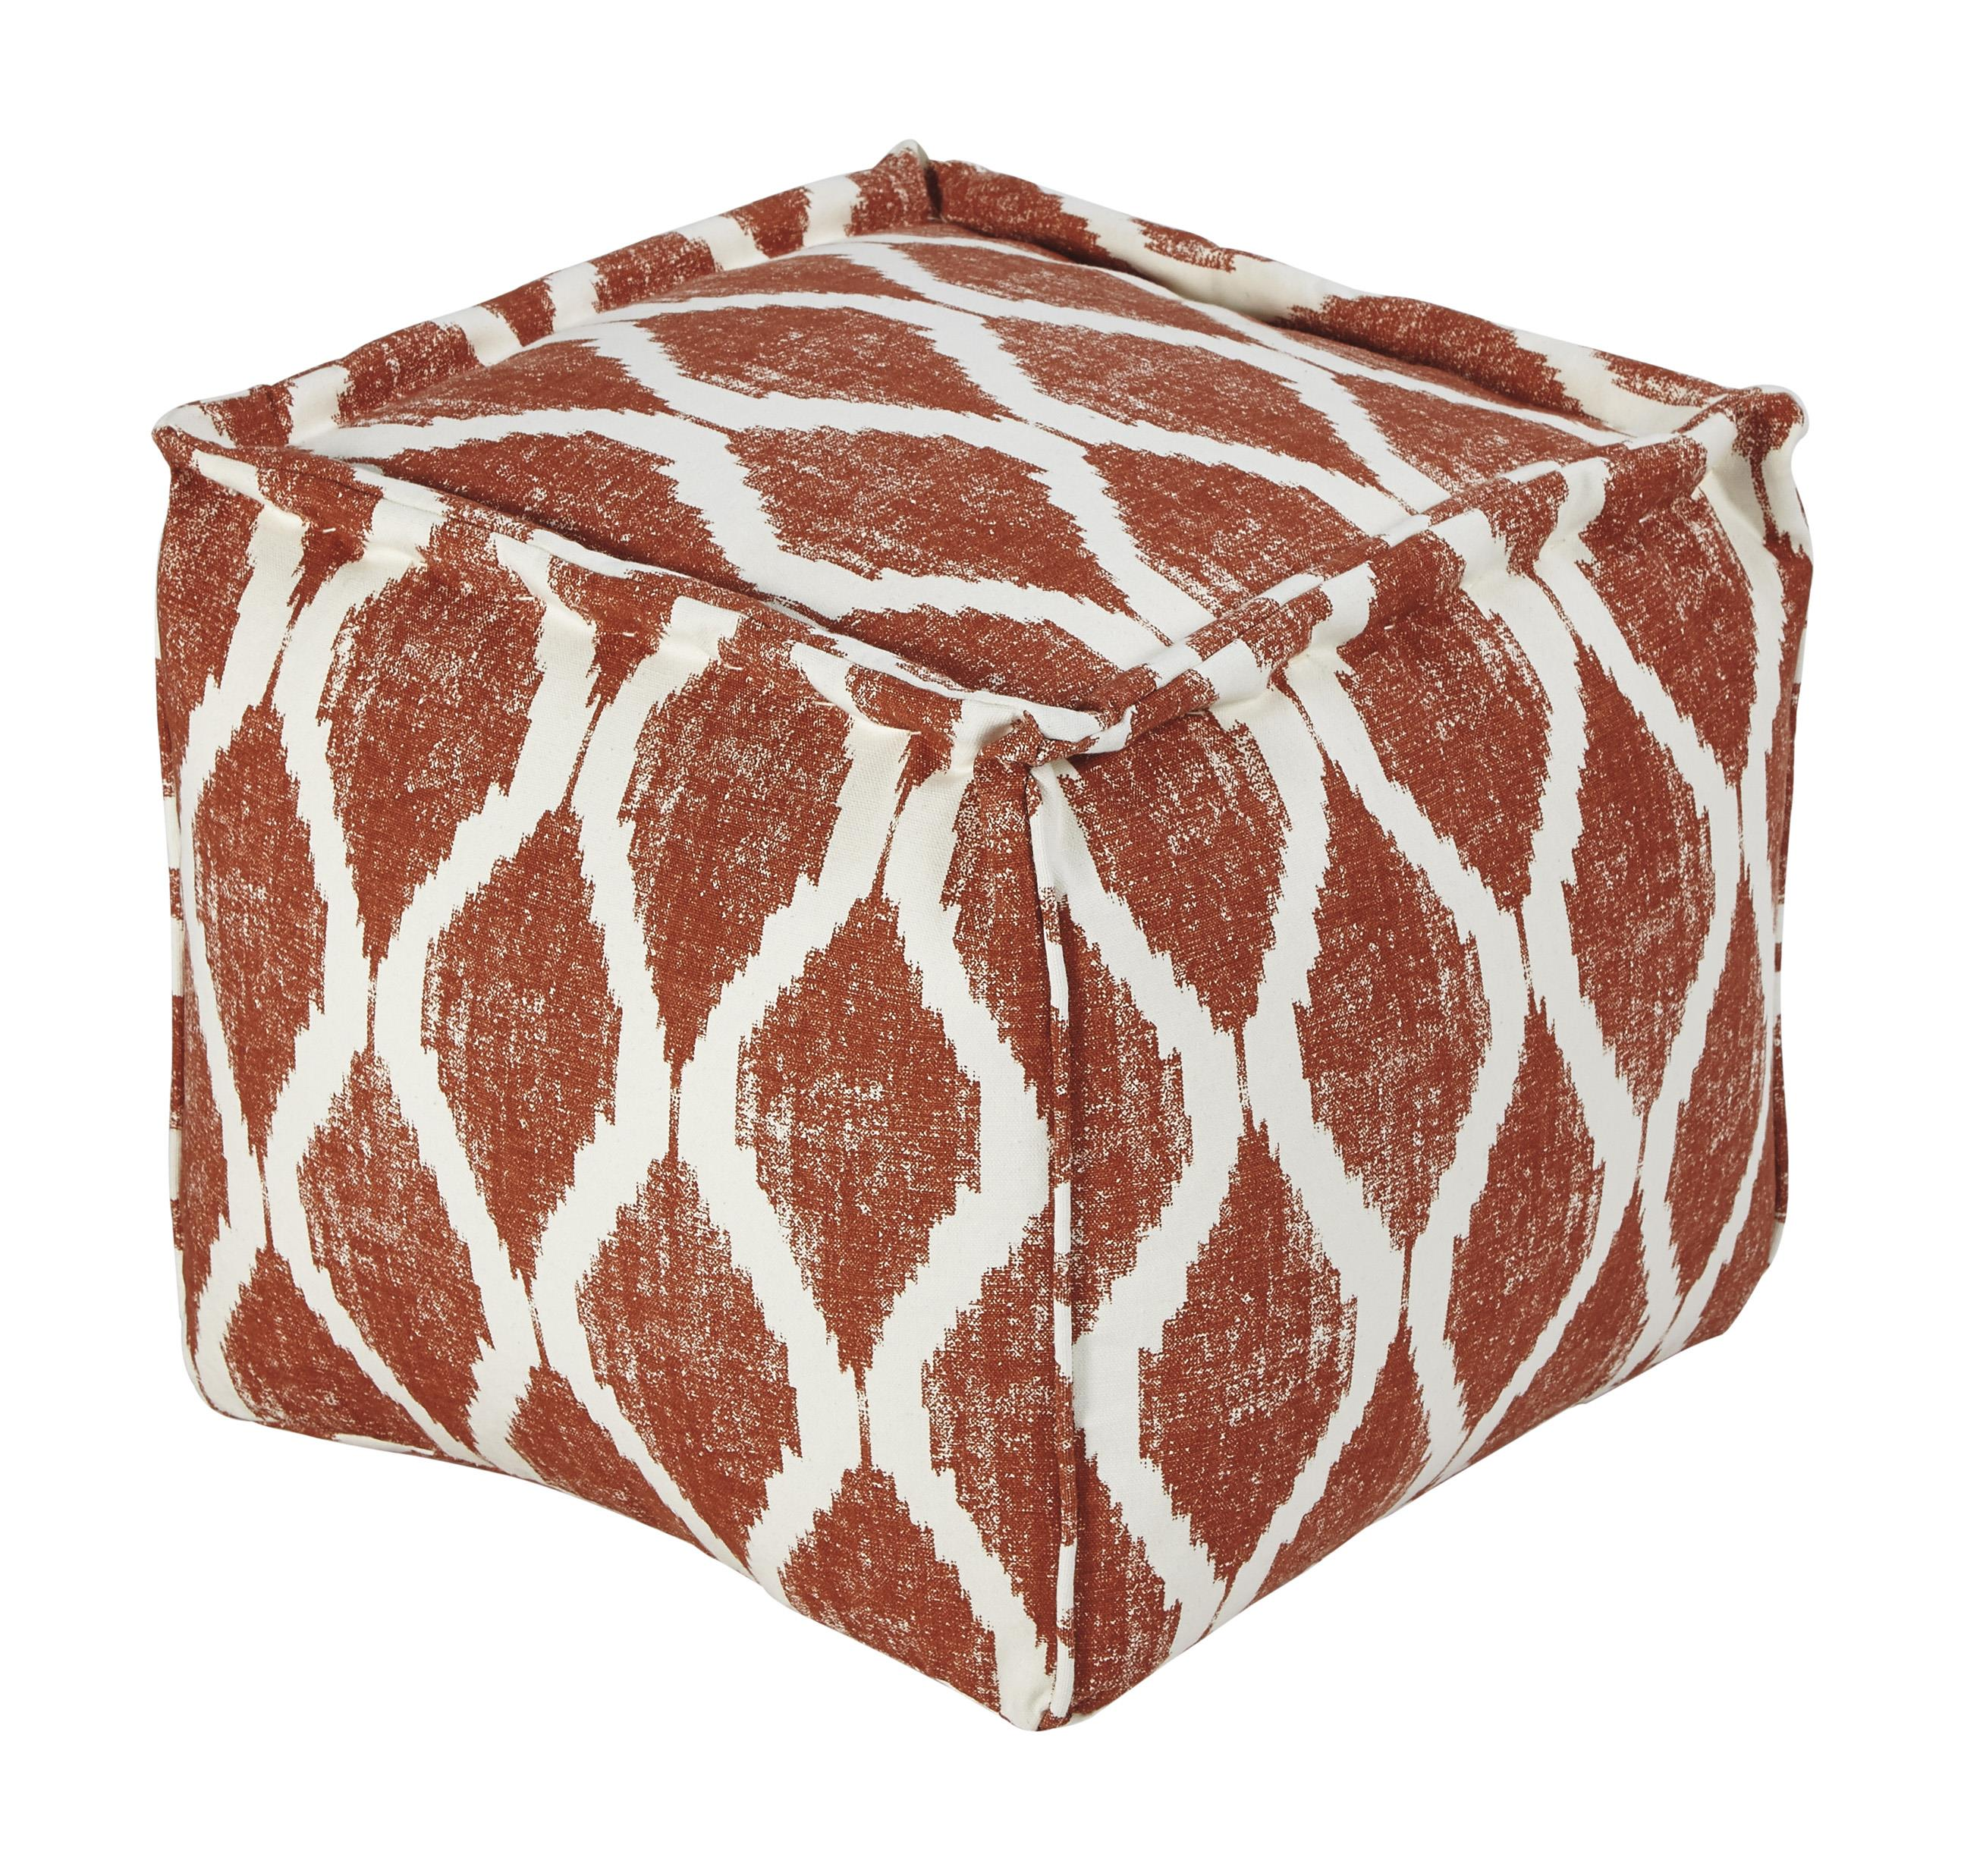 Signature Design by Ashley Poufs Bruce - Orange/White Pouf - Item Number: A1000545